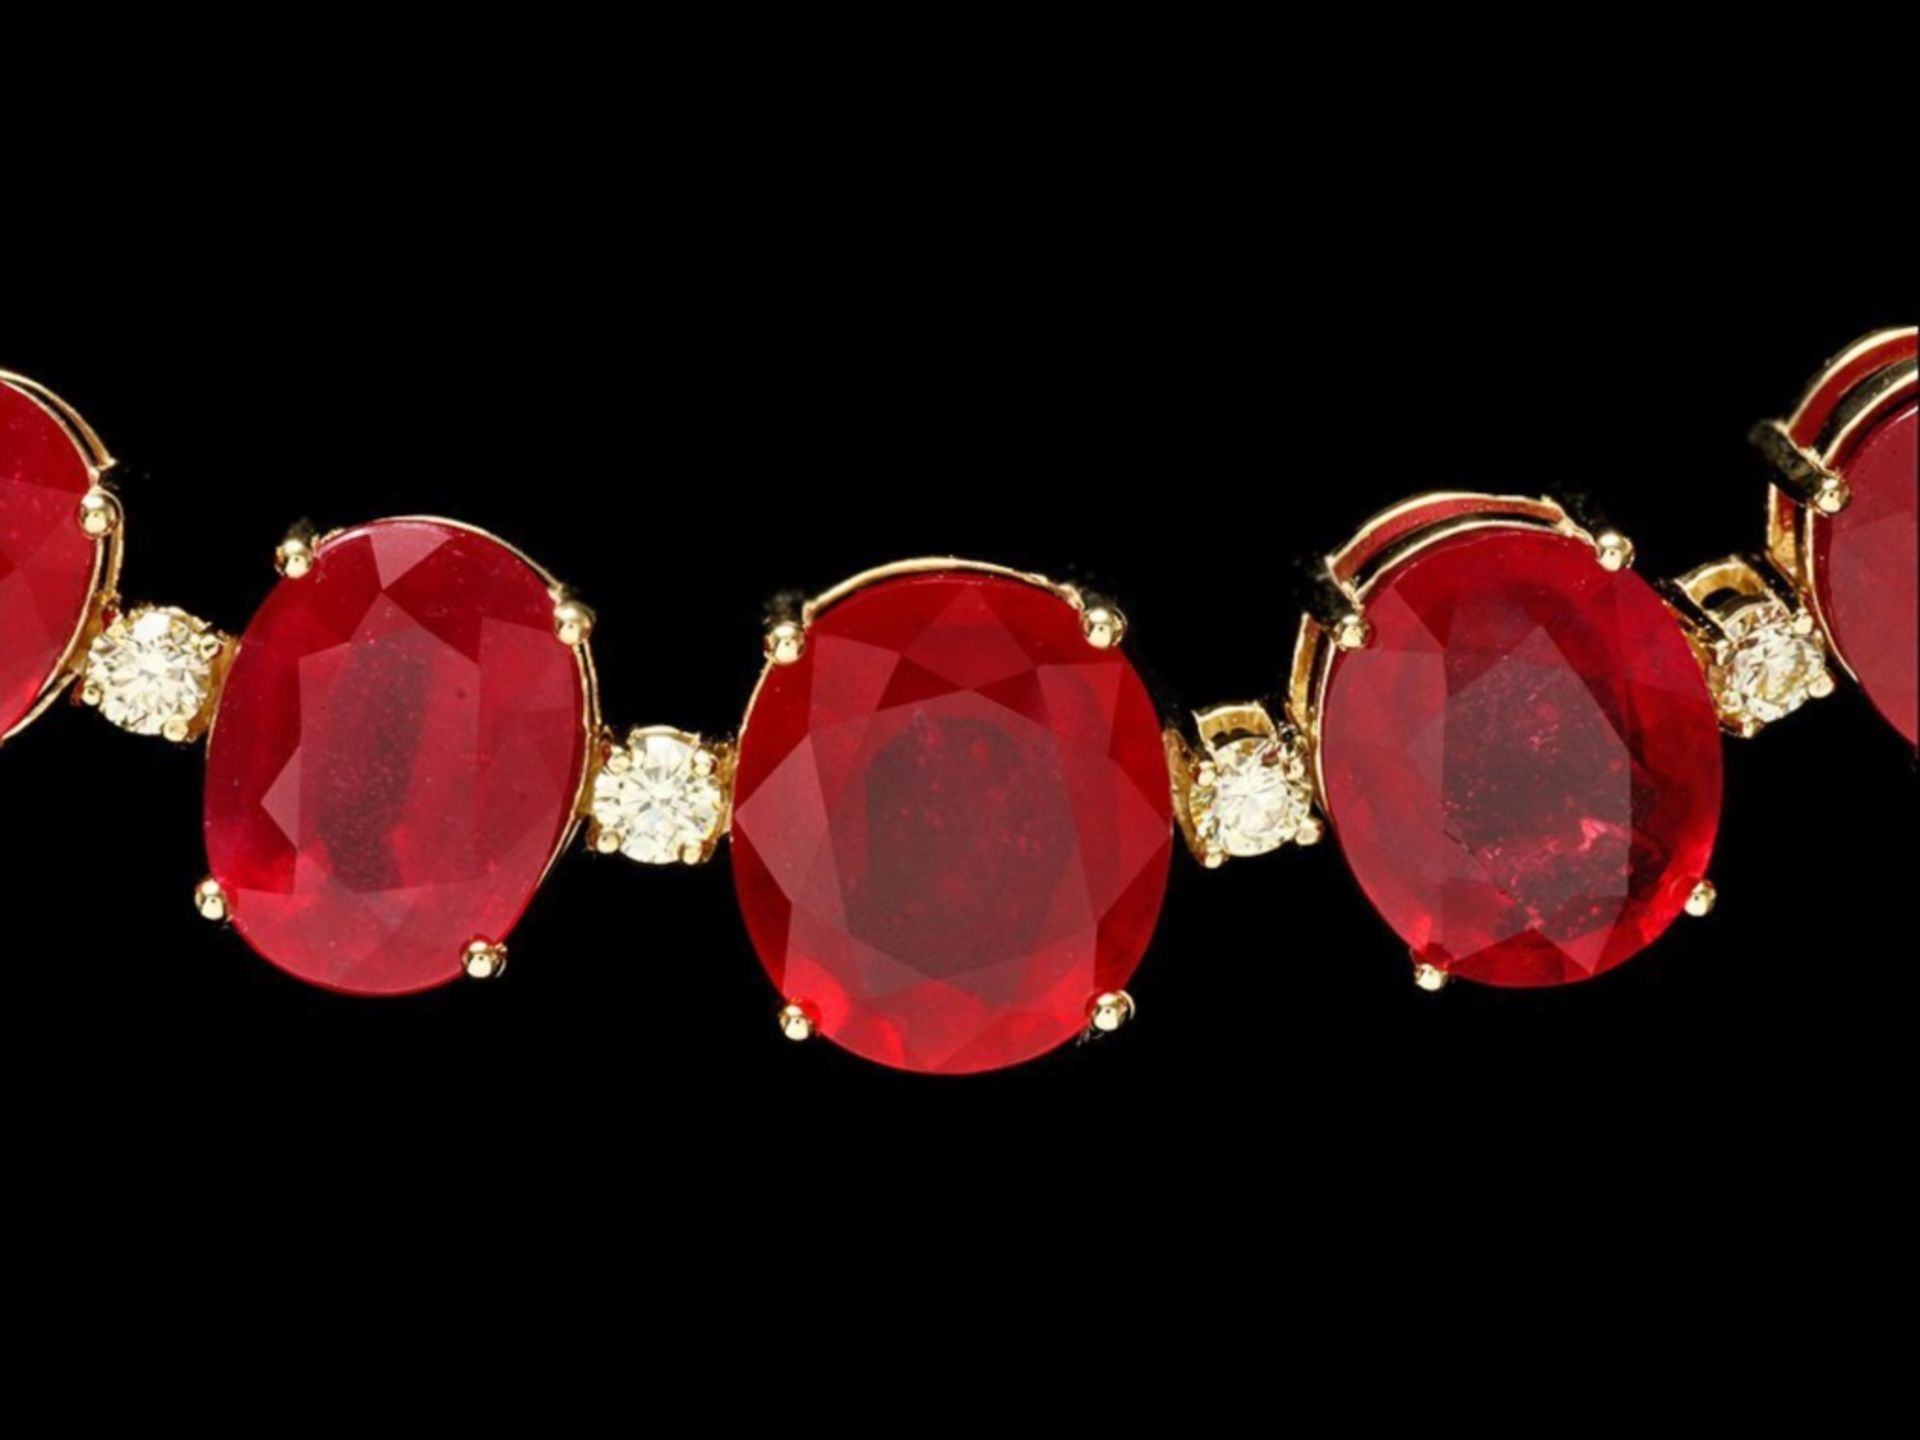 `14k Gold 135.00ct Ruby & 4.00ct Diamond Necklace - Image 2 of 4